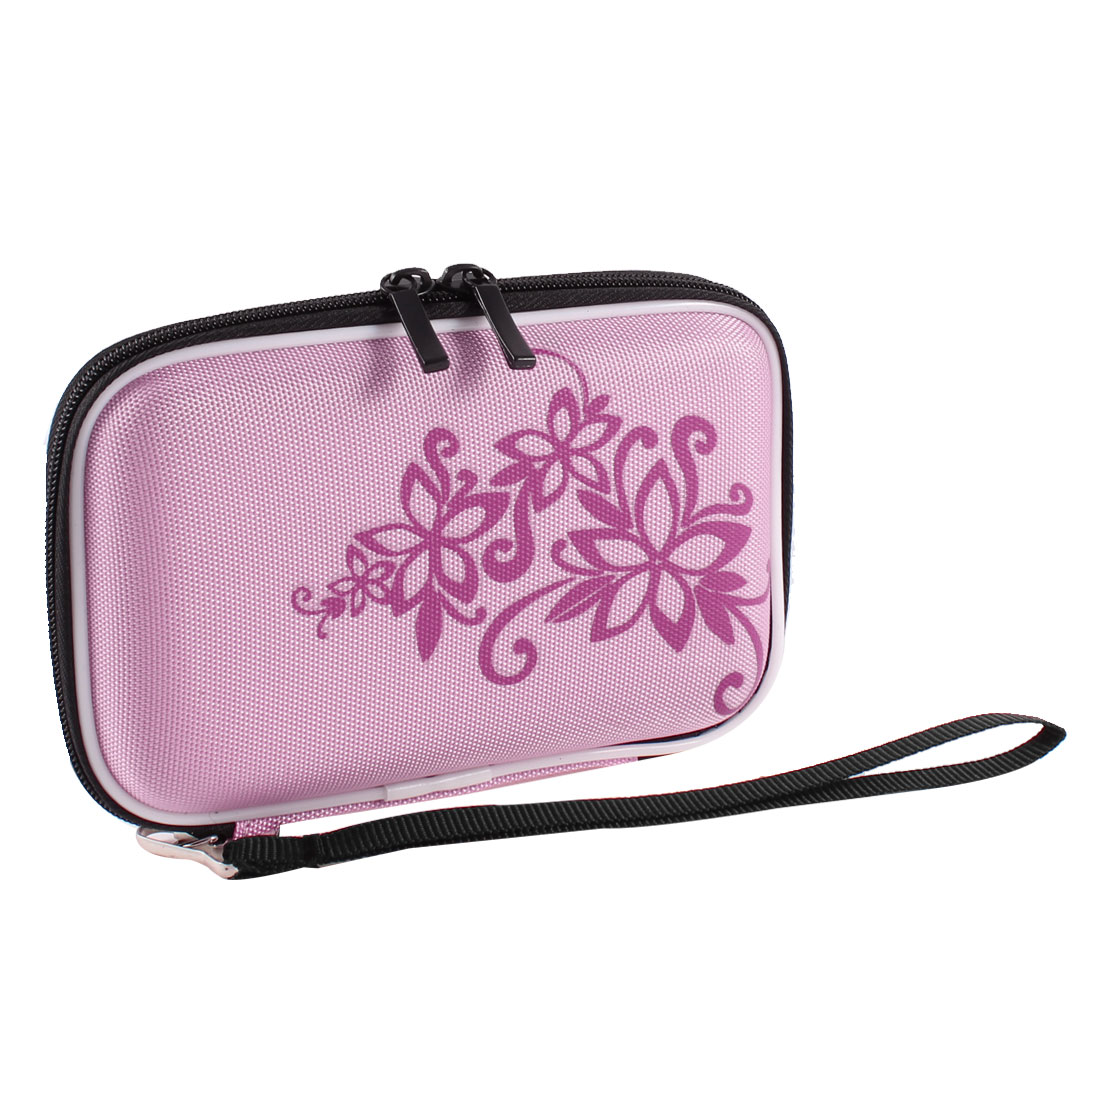 "Pink EVA Protect Case Bag Pouch Zipper Closure for 2.5"" HDD Hard Drive Disk"